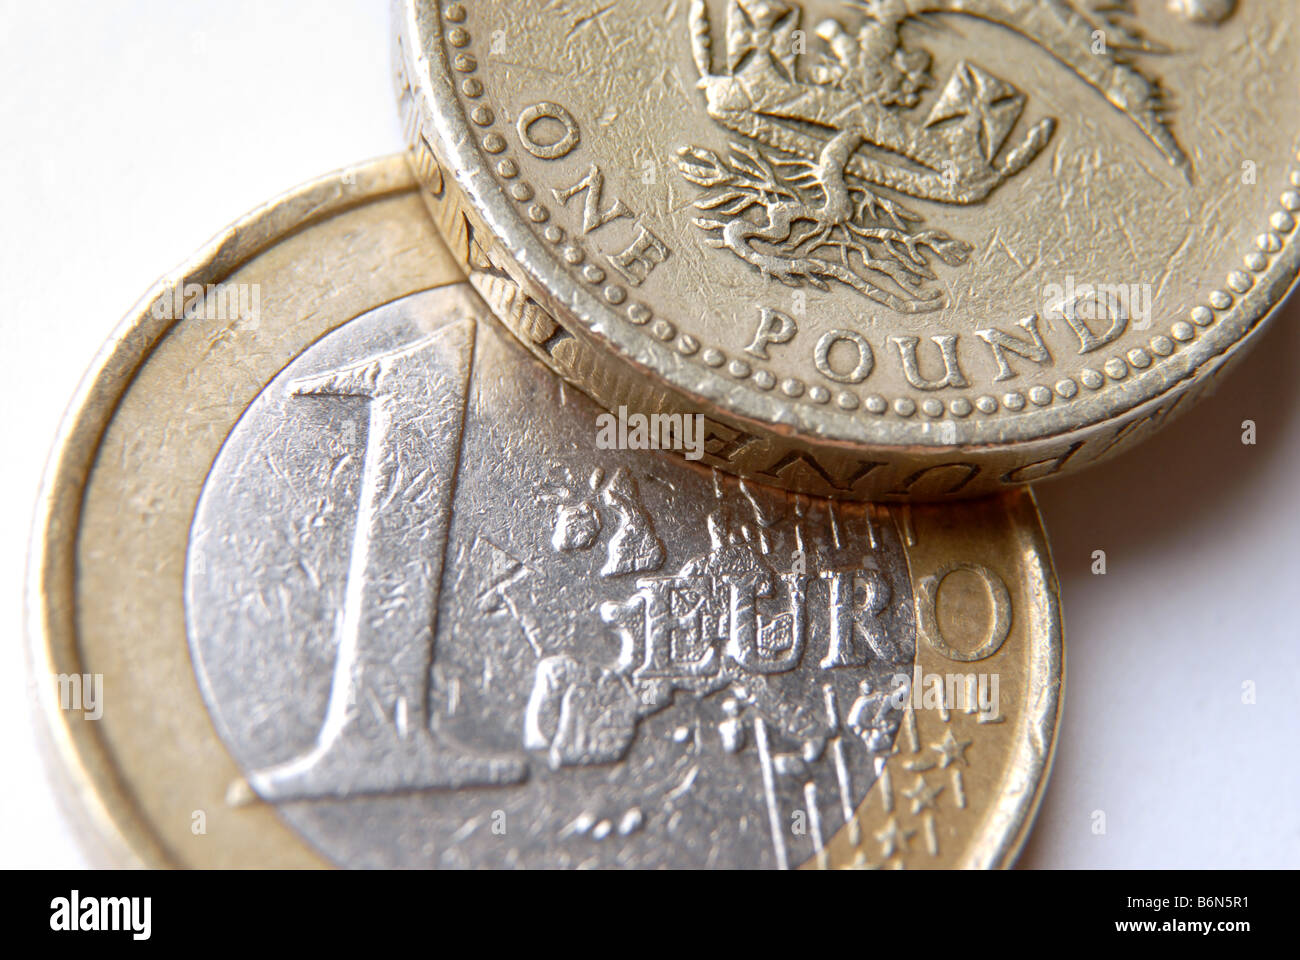 Generic picture with a one pound coin and a one euro coin - Stock Image